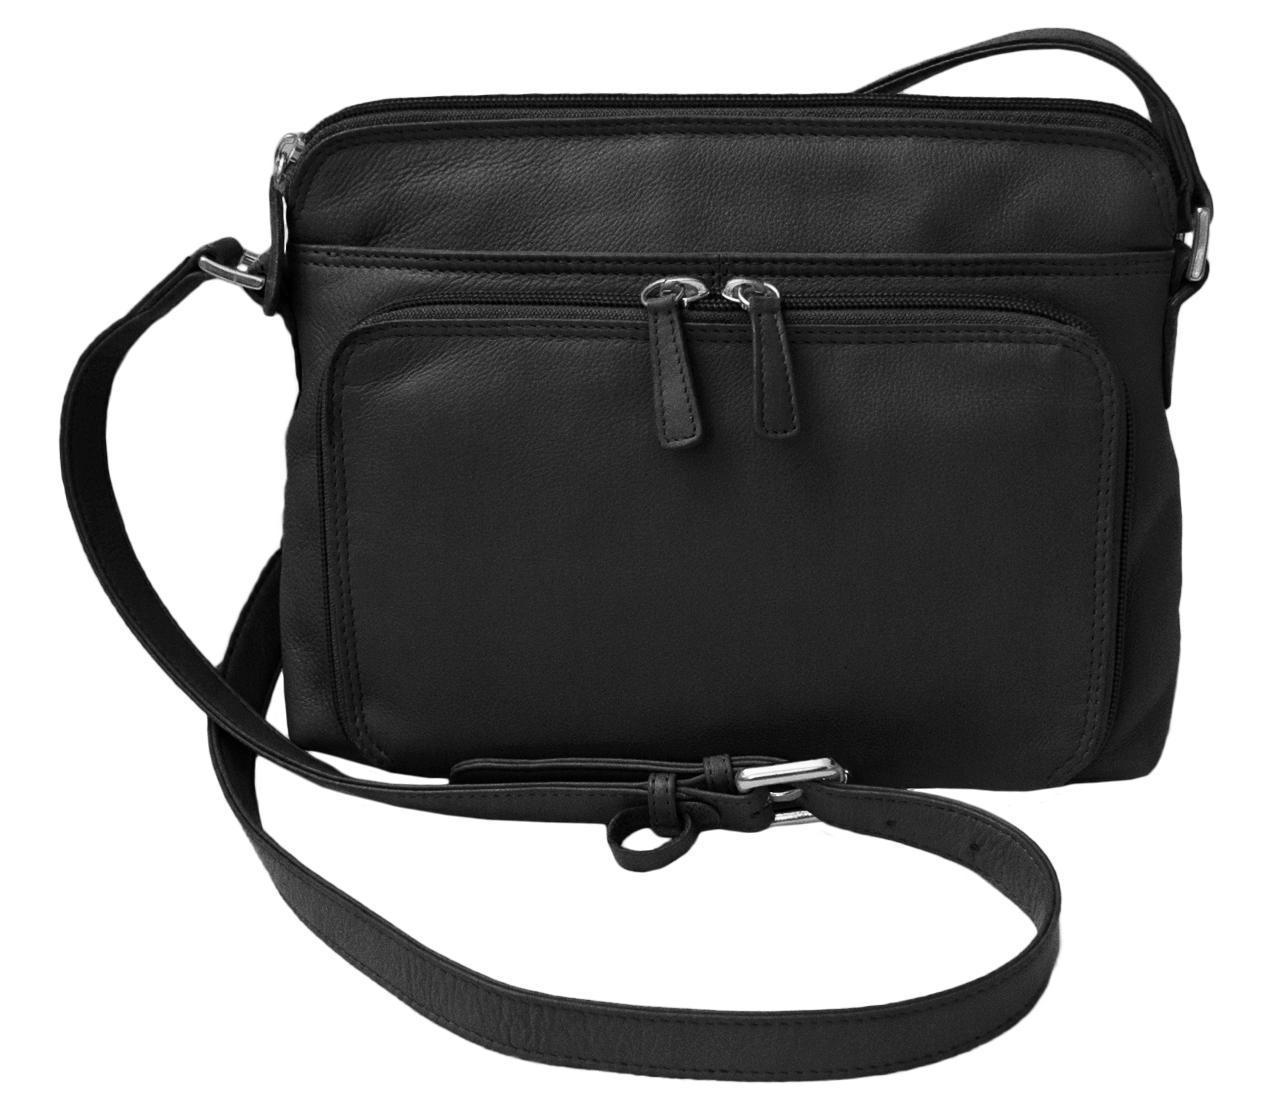 CTM Women's Leather Shoulder Bag Purse with Side Organizer - Black one (IL-6333-BLK IL-6333) photo